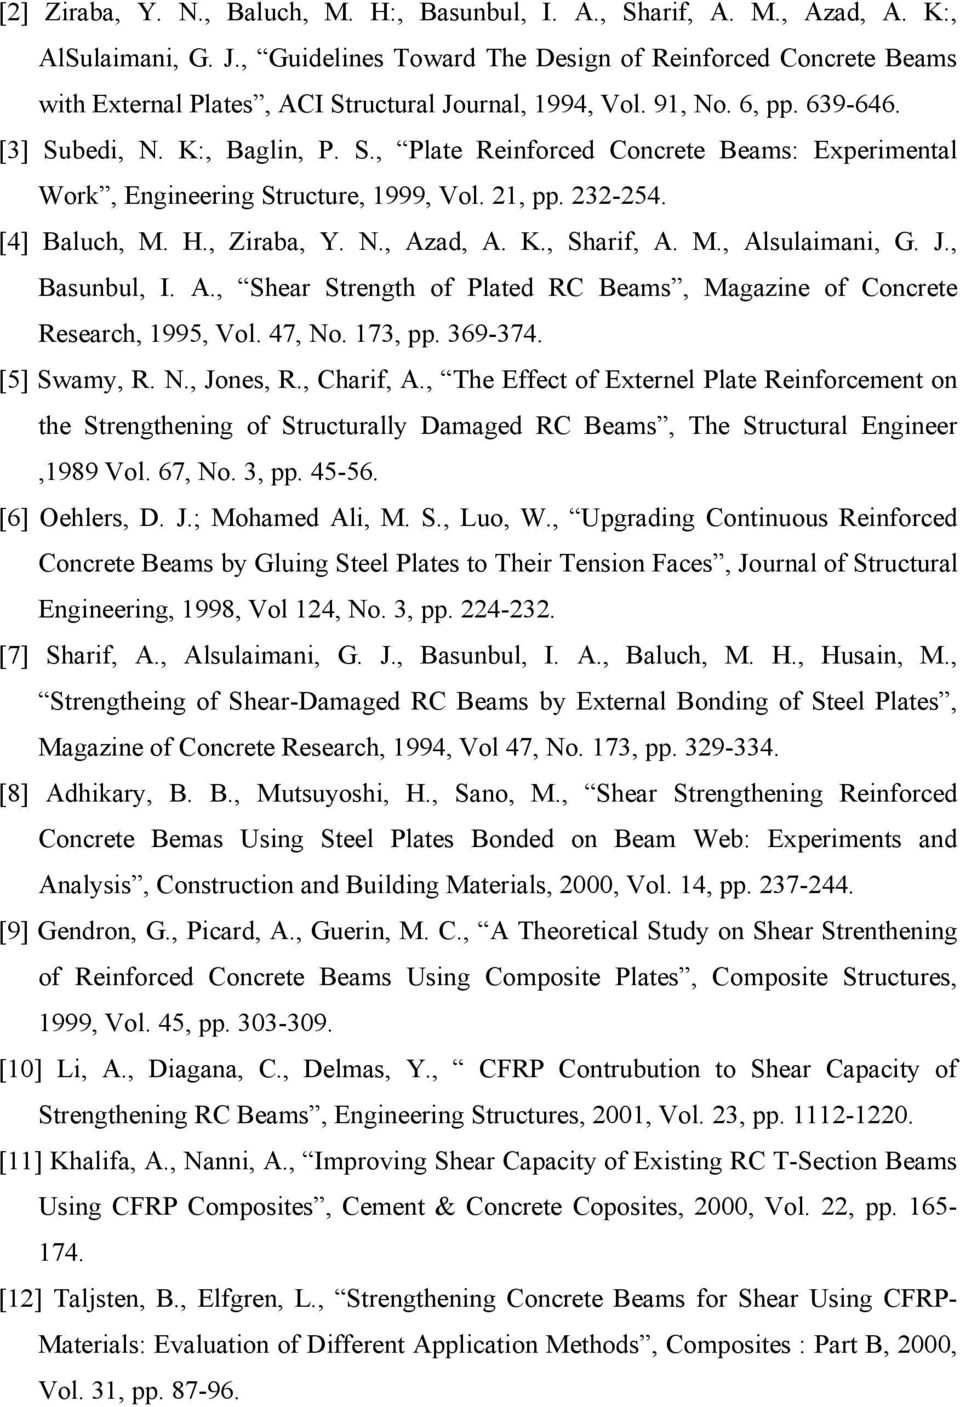 M., Alsulimni, G. J., Bsunbul, I. A., Sher Strength of Plted RC Bems, Mgzine of Concrete Reserch, 1995, Vol. 47, No. 173, pp. 369-374. [5] Swmy, R. N., Jones, R., Chrif, A.